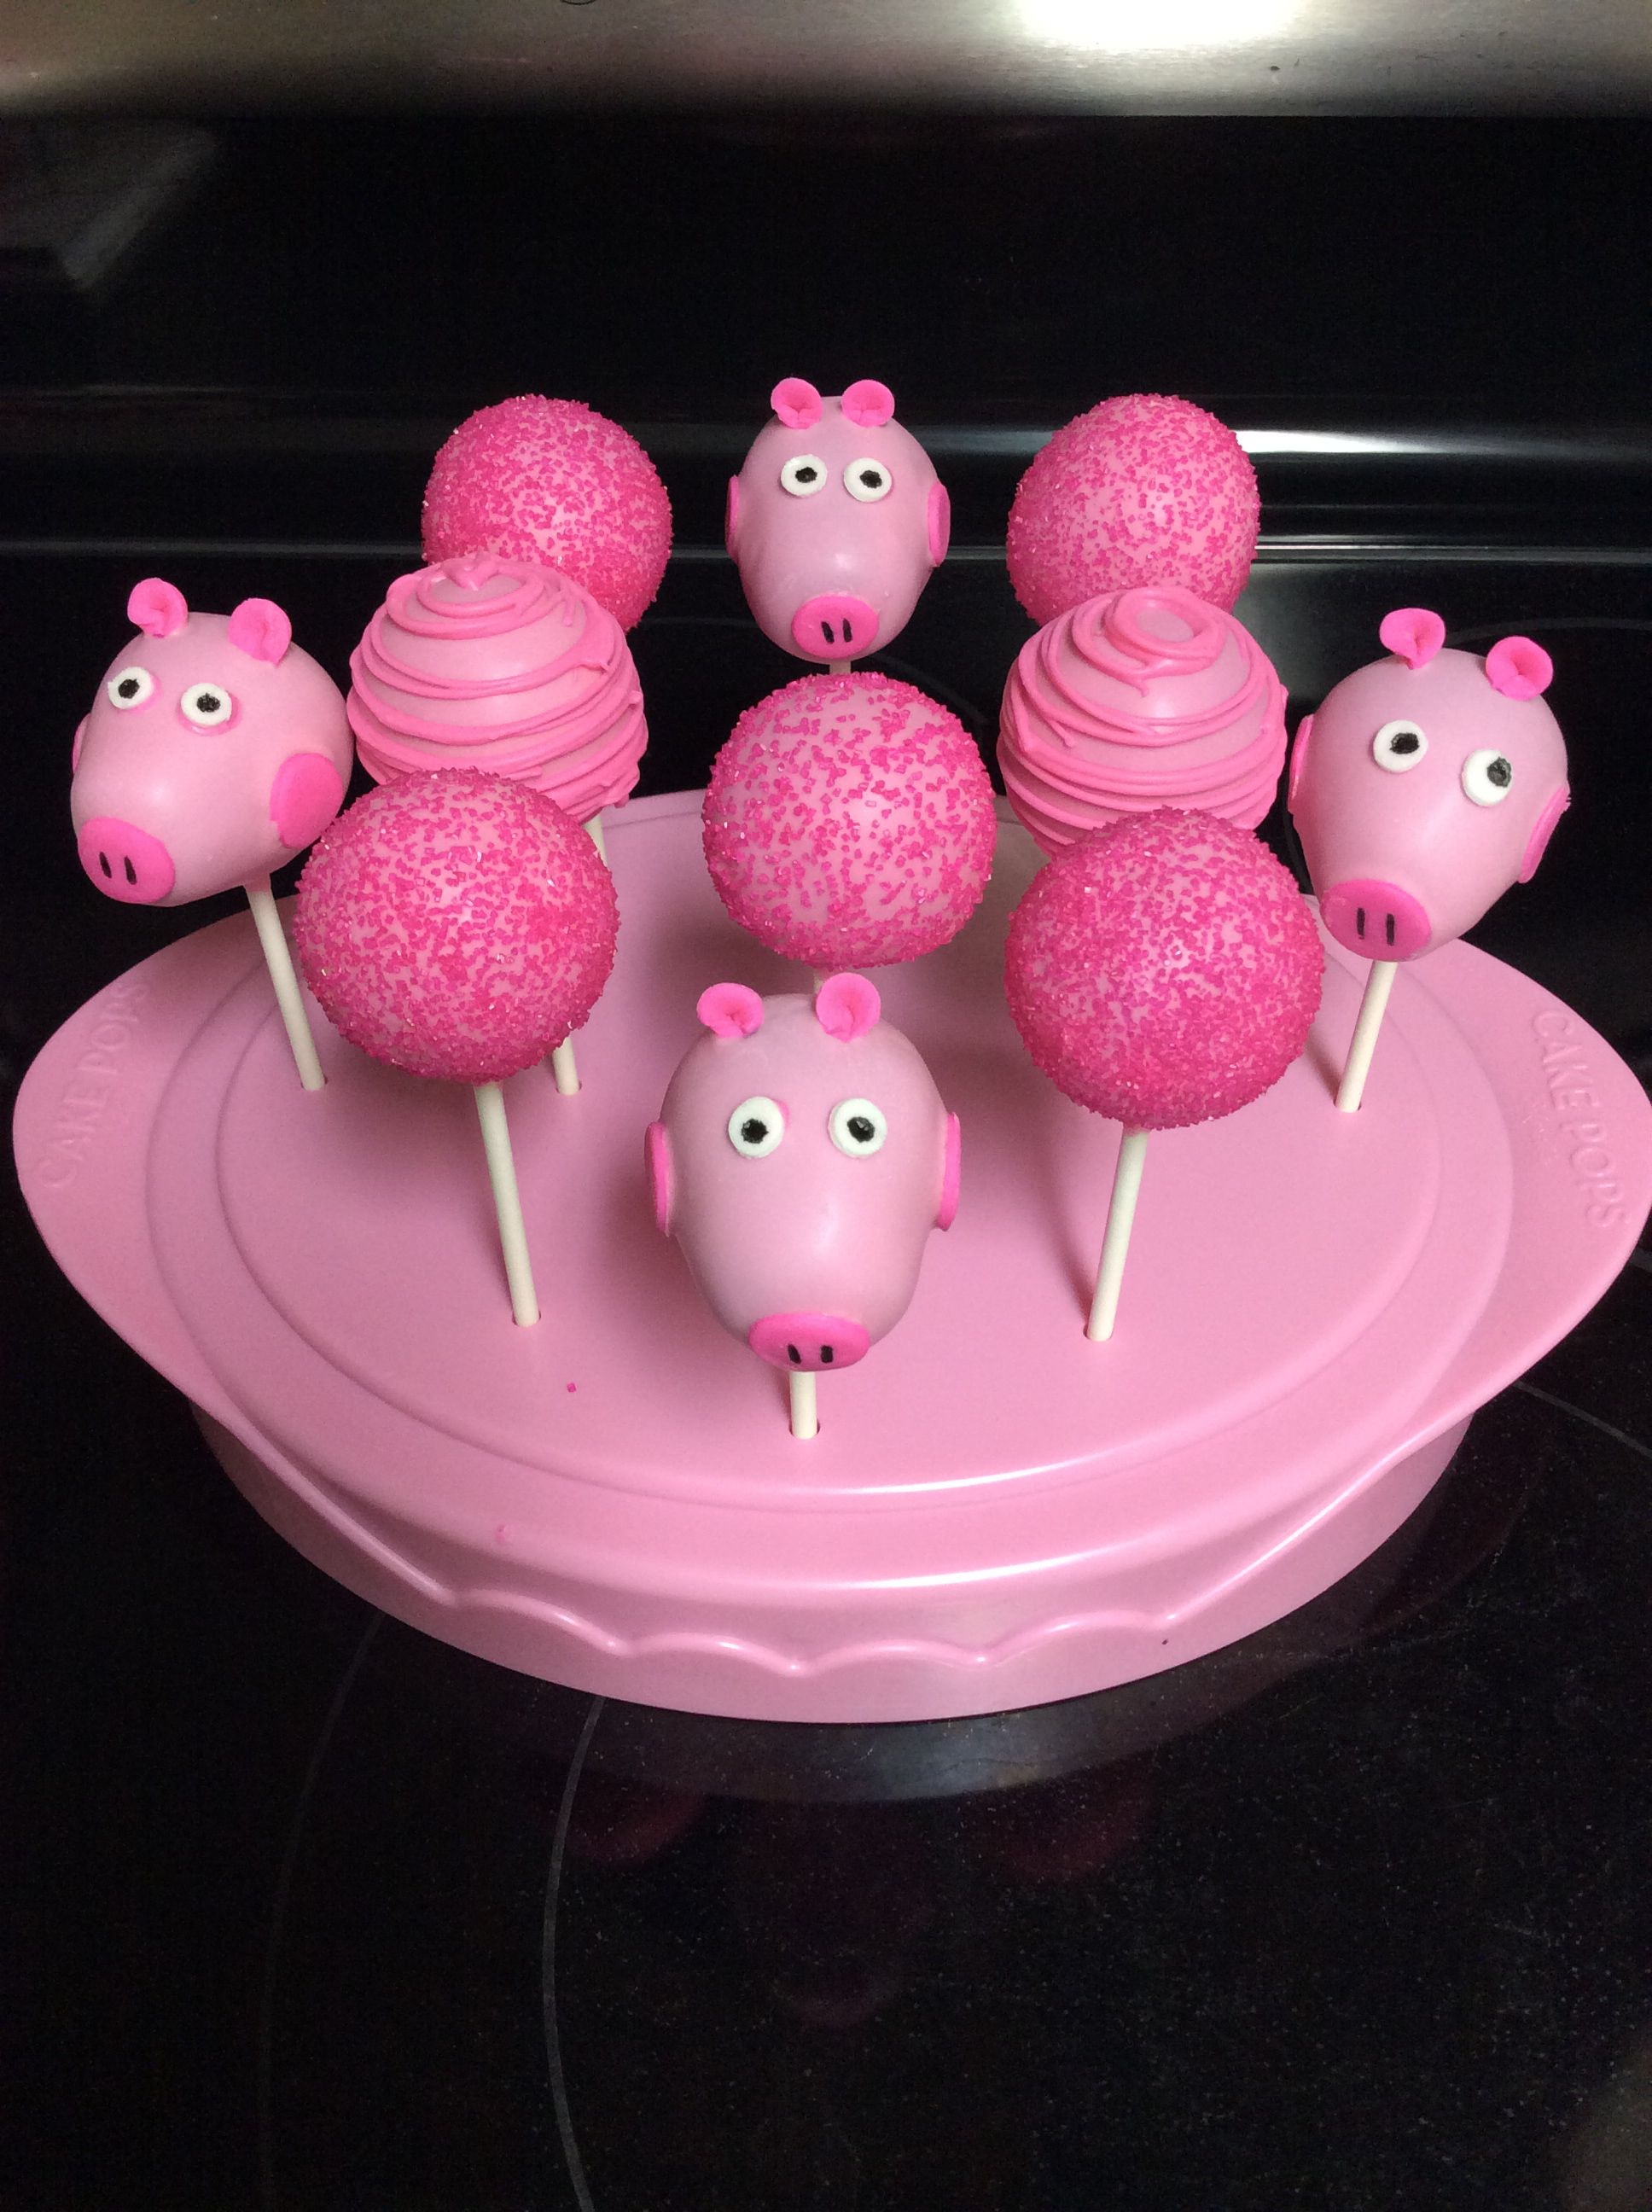 peppa pig cake pops sallyscakepops peppa pig recipes pinterest pyssel bakverk och dekoration. Black Bedroom Furniture Sets. Home Design Ideas